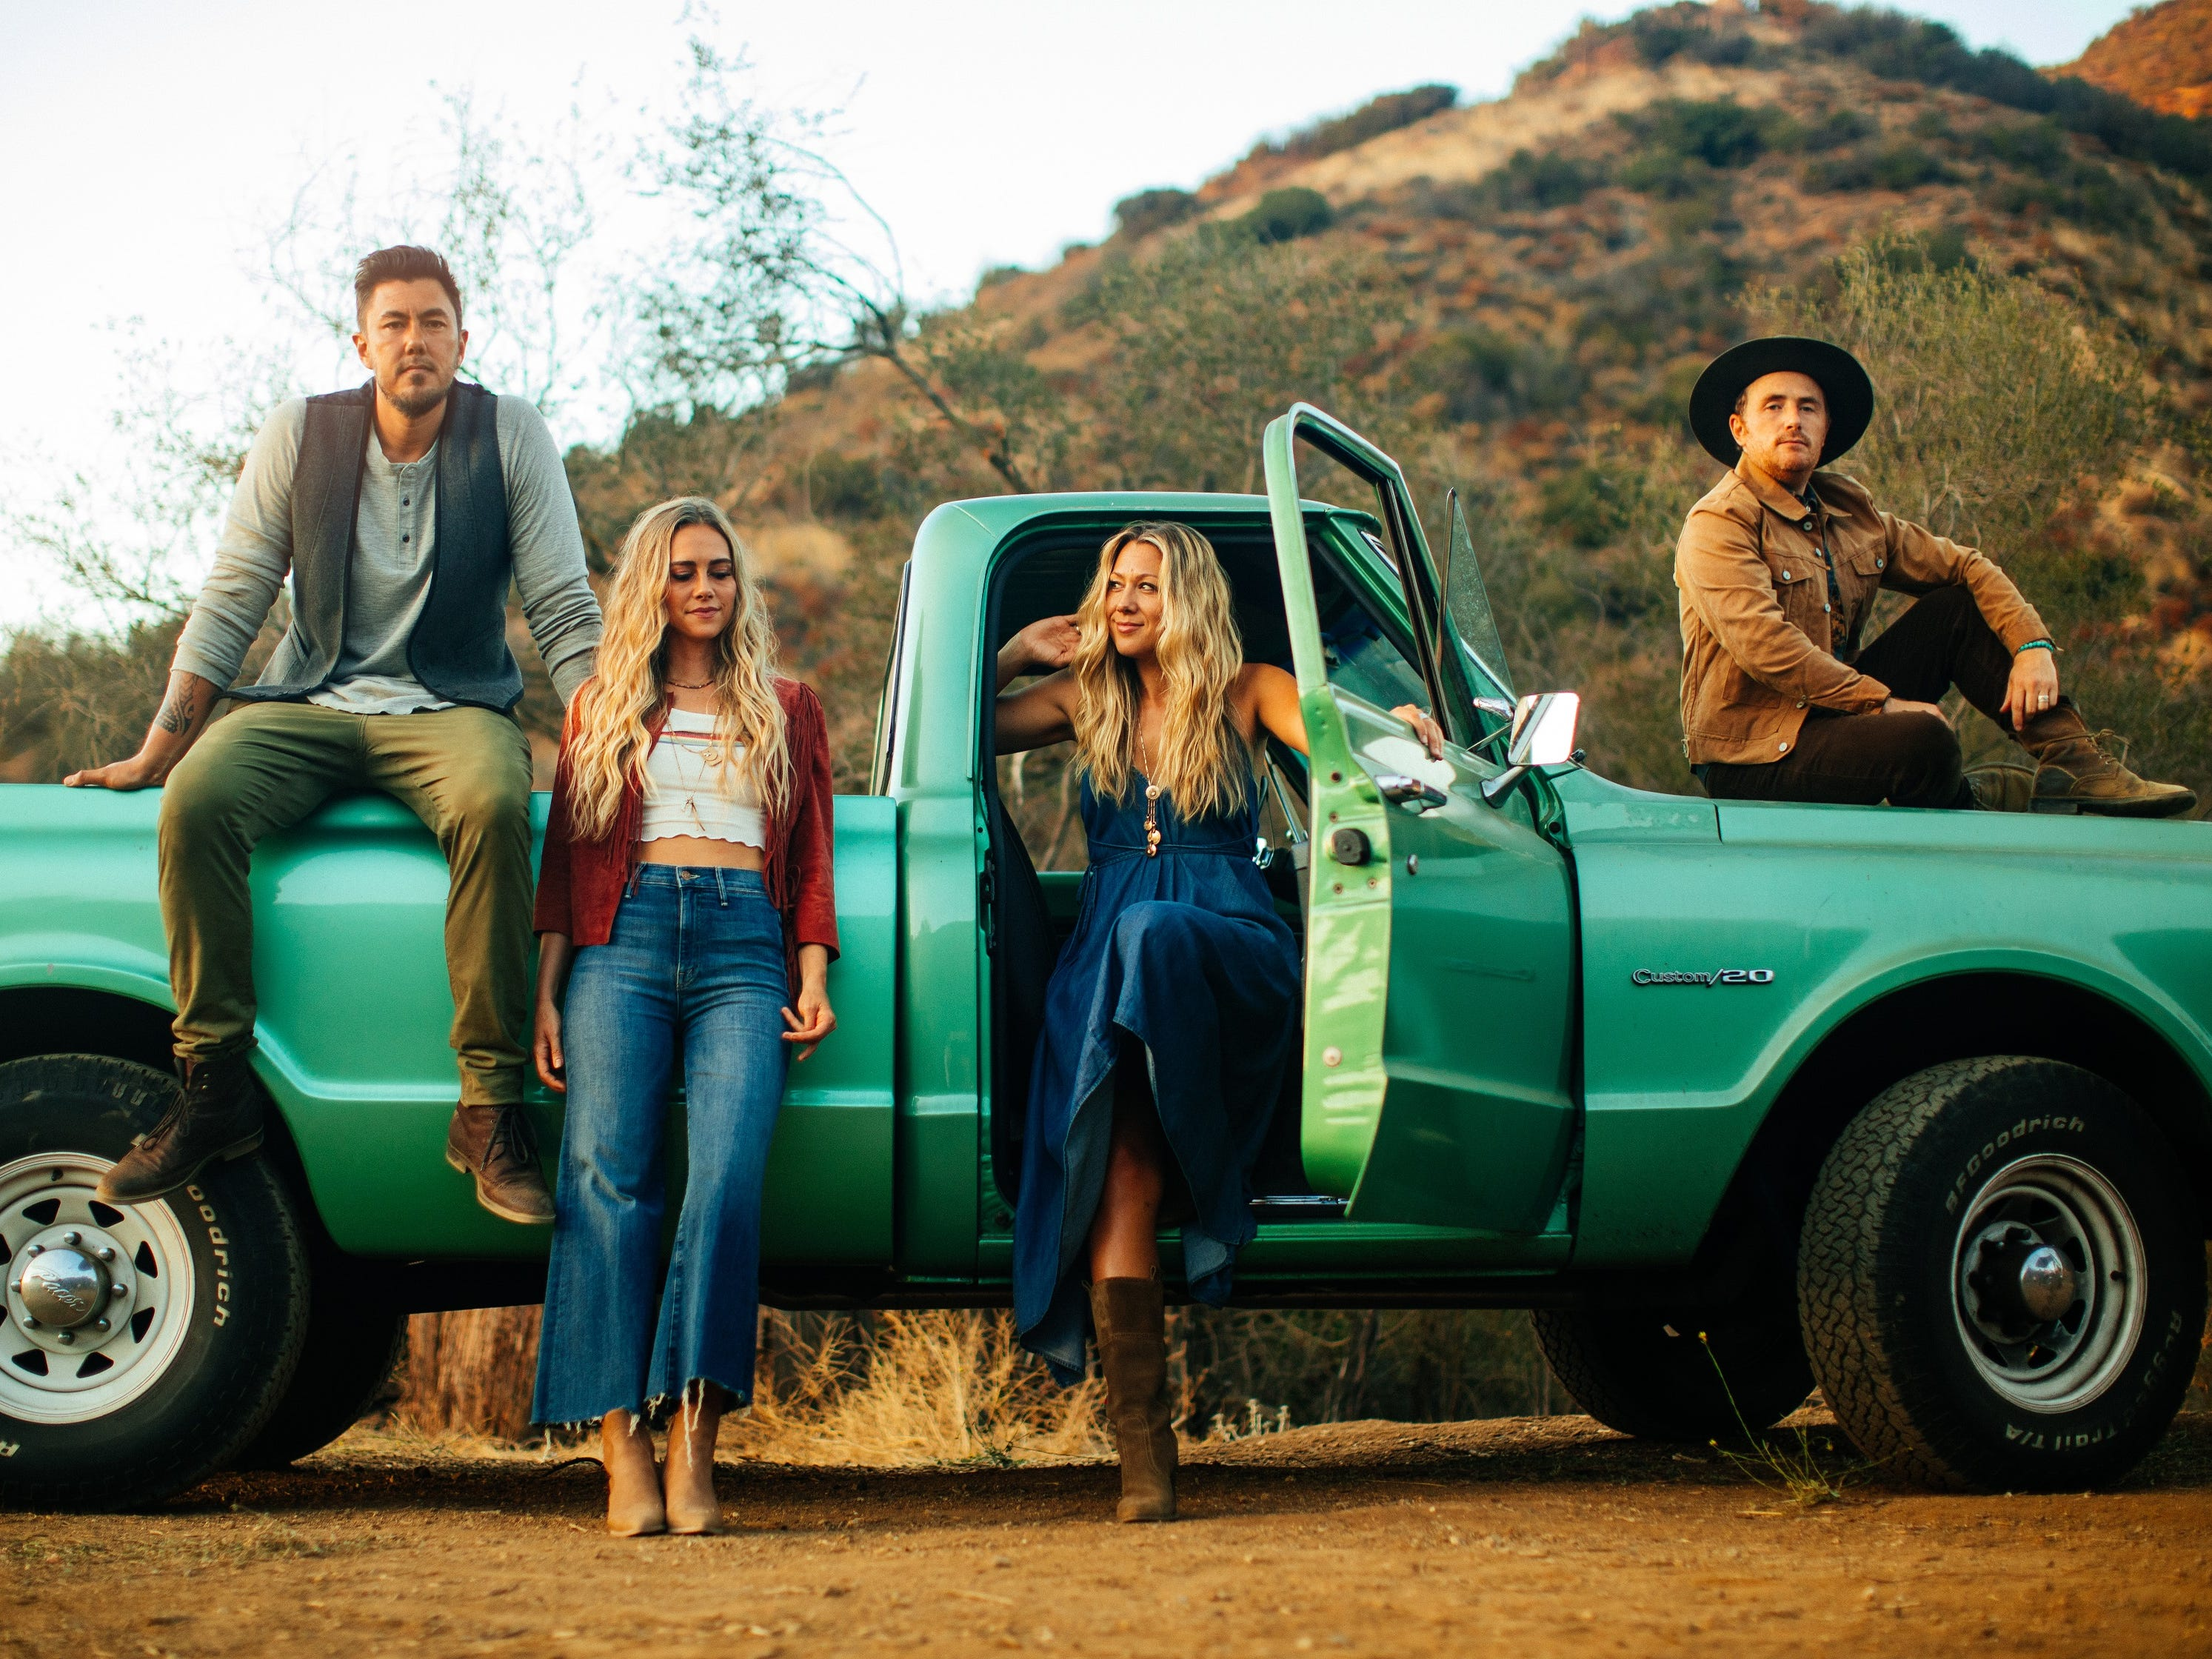 Musician Colbie Caillat's band Gone West will perform at the Borderline Strong concert Feb. 11 in Thousand Oaks. The band includes her fiancé Justin Young, from left, Nelly Joy, Caillet and Jason Reeves.